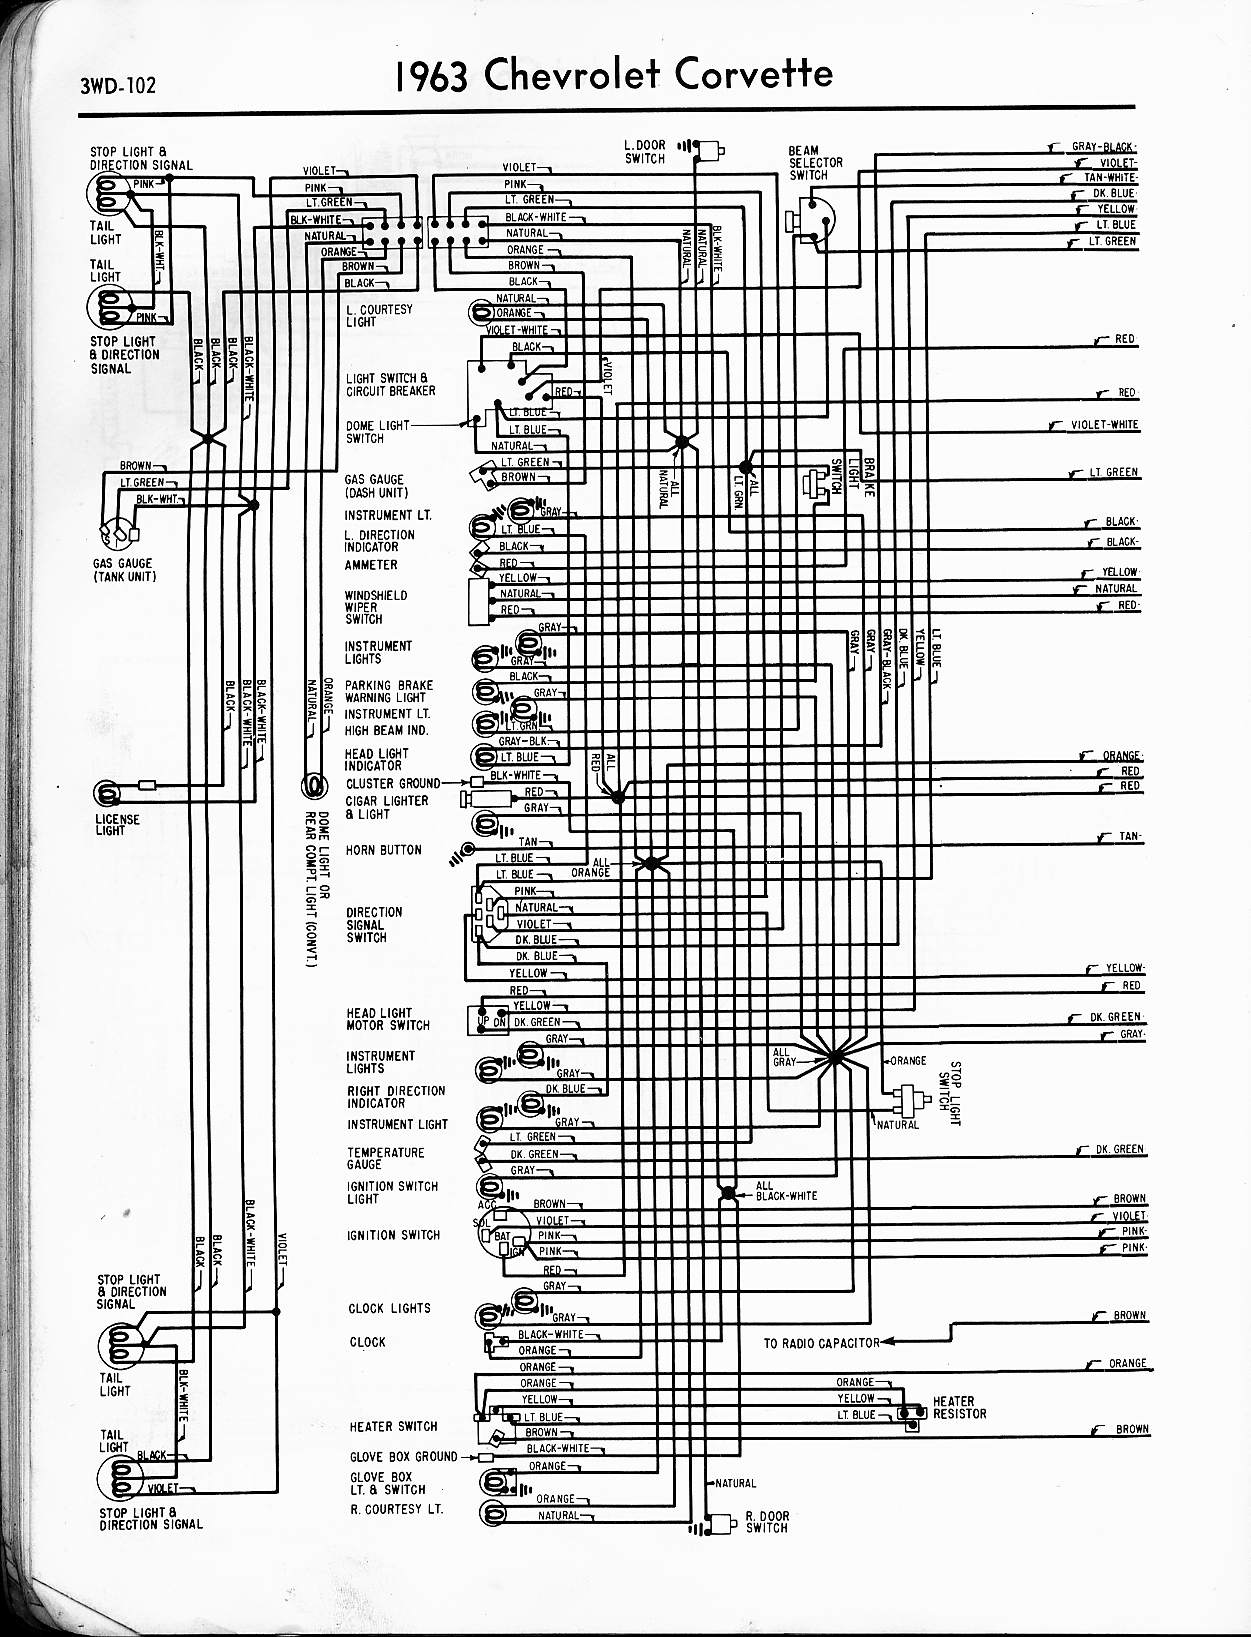 1963 Chevy Starter Wiring Diagram Schematics Diagrams 1954 Corvette 36 Bel Air 63